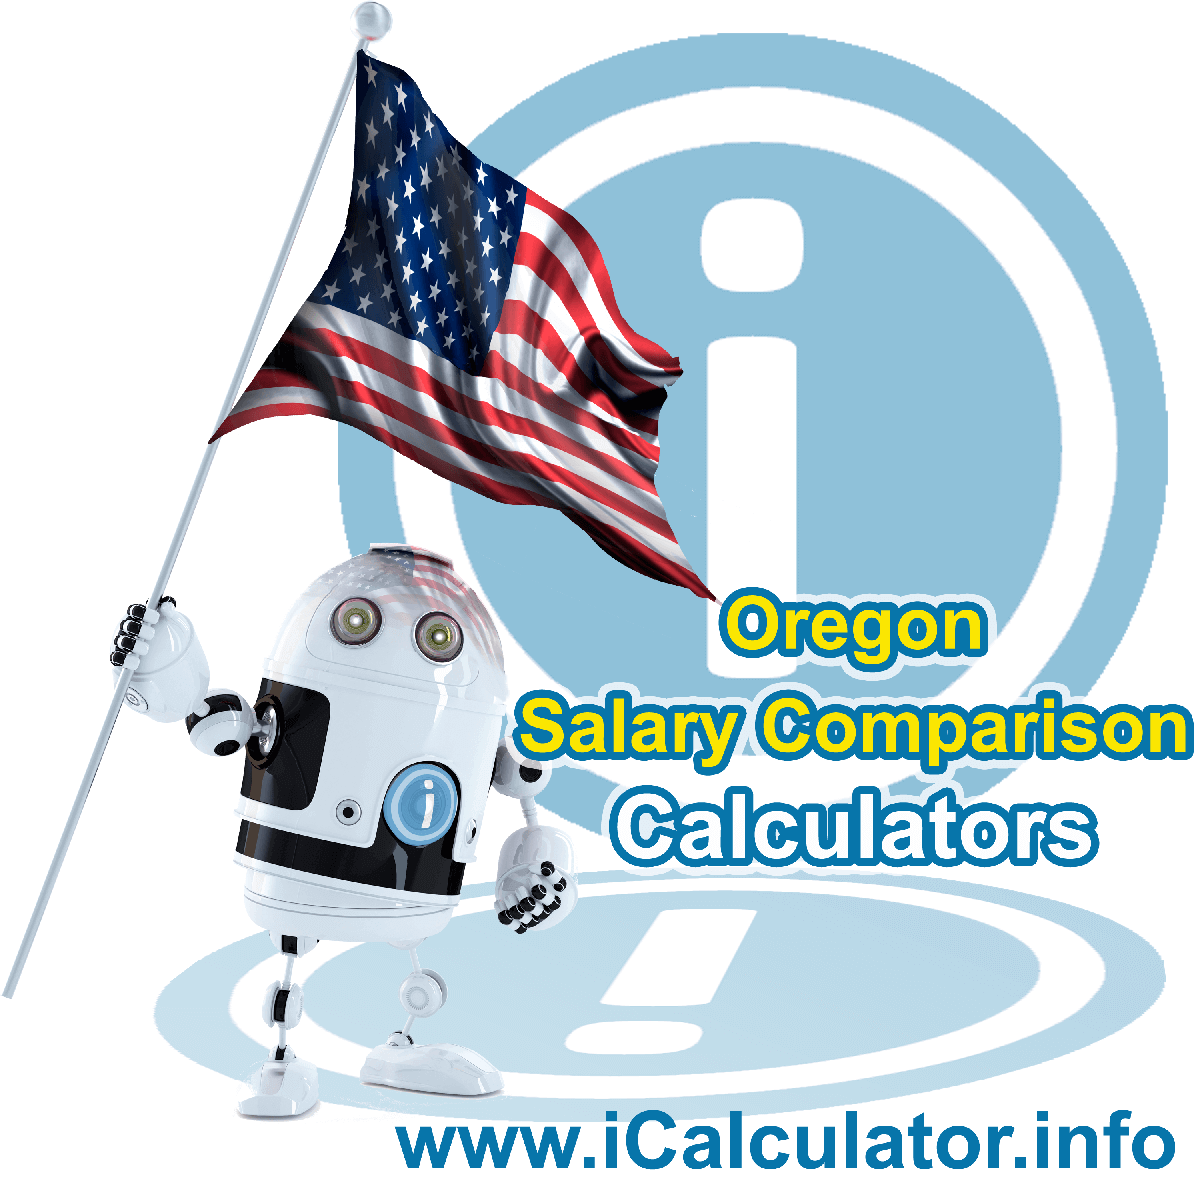 Oregon Salary Comparison Calculator 2019 | iCalculator | The Oregon Salary Comparison Calculator allows you to quickly calculate and compare upto 6 salaries in Oregon or between other states for the 2019 tax year and historical tax years. Its an excellent tool for jobseekers, pay raise comparison and comparison of salaries between different US States